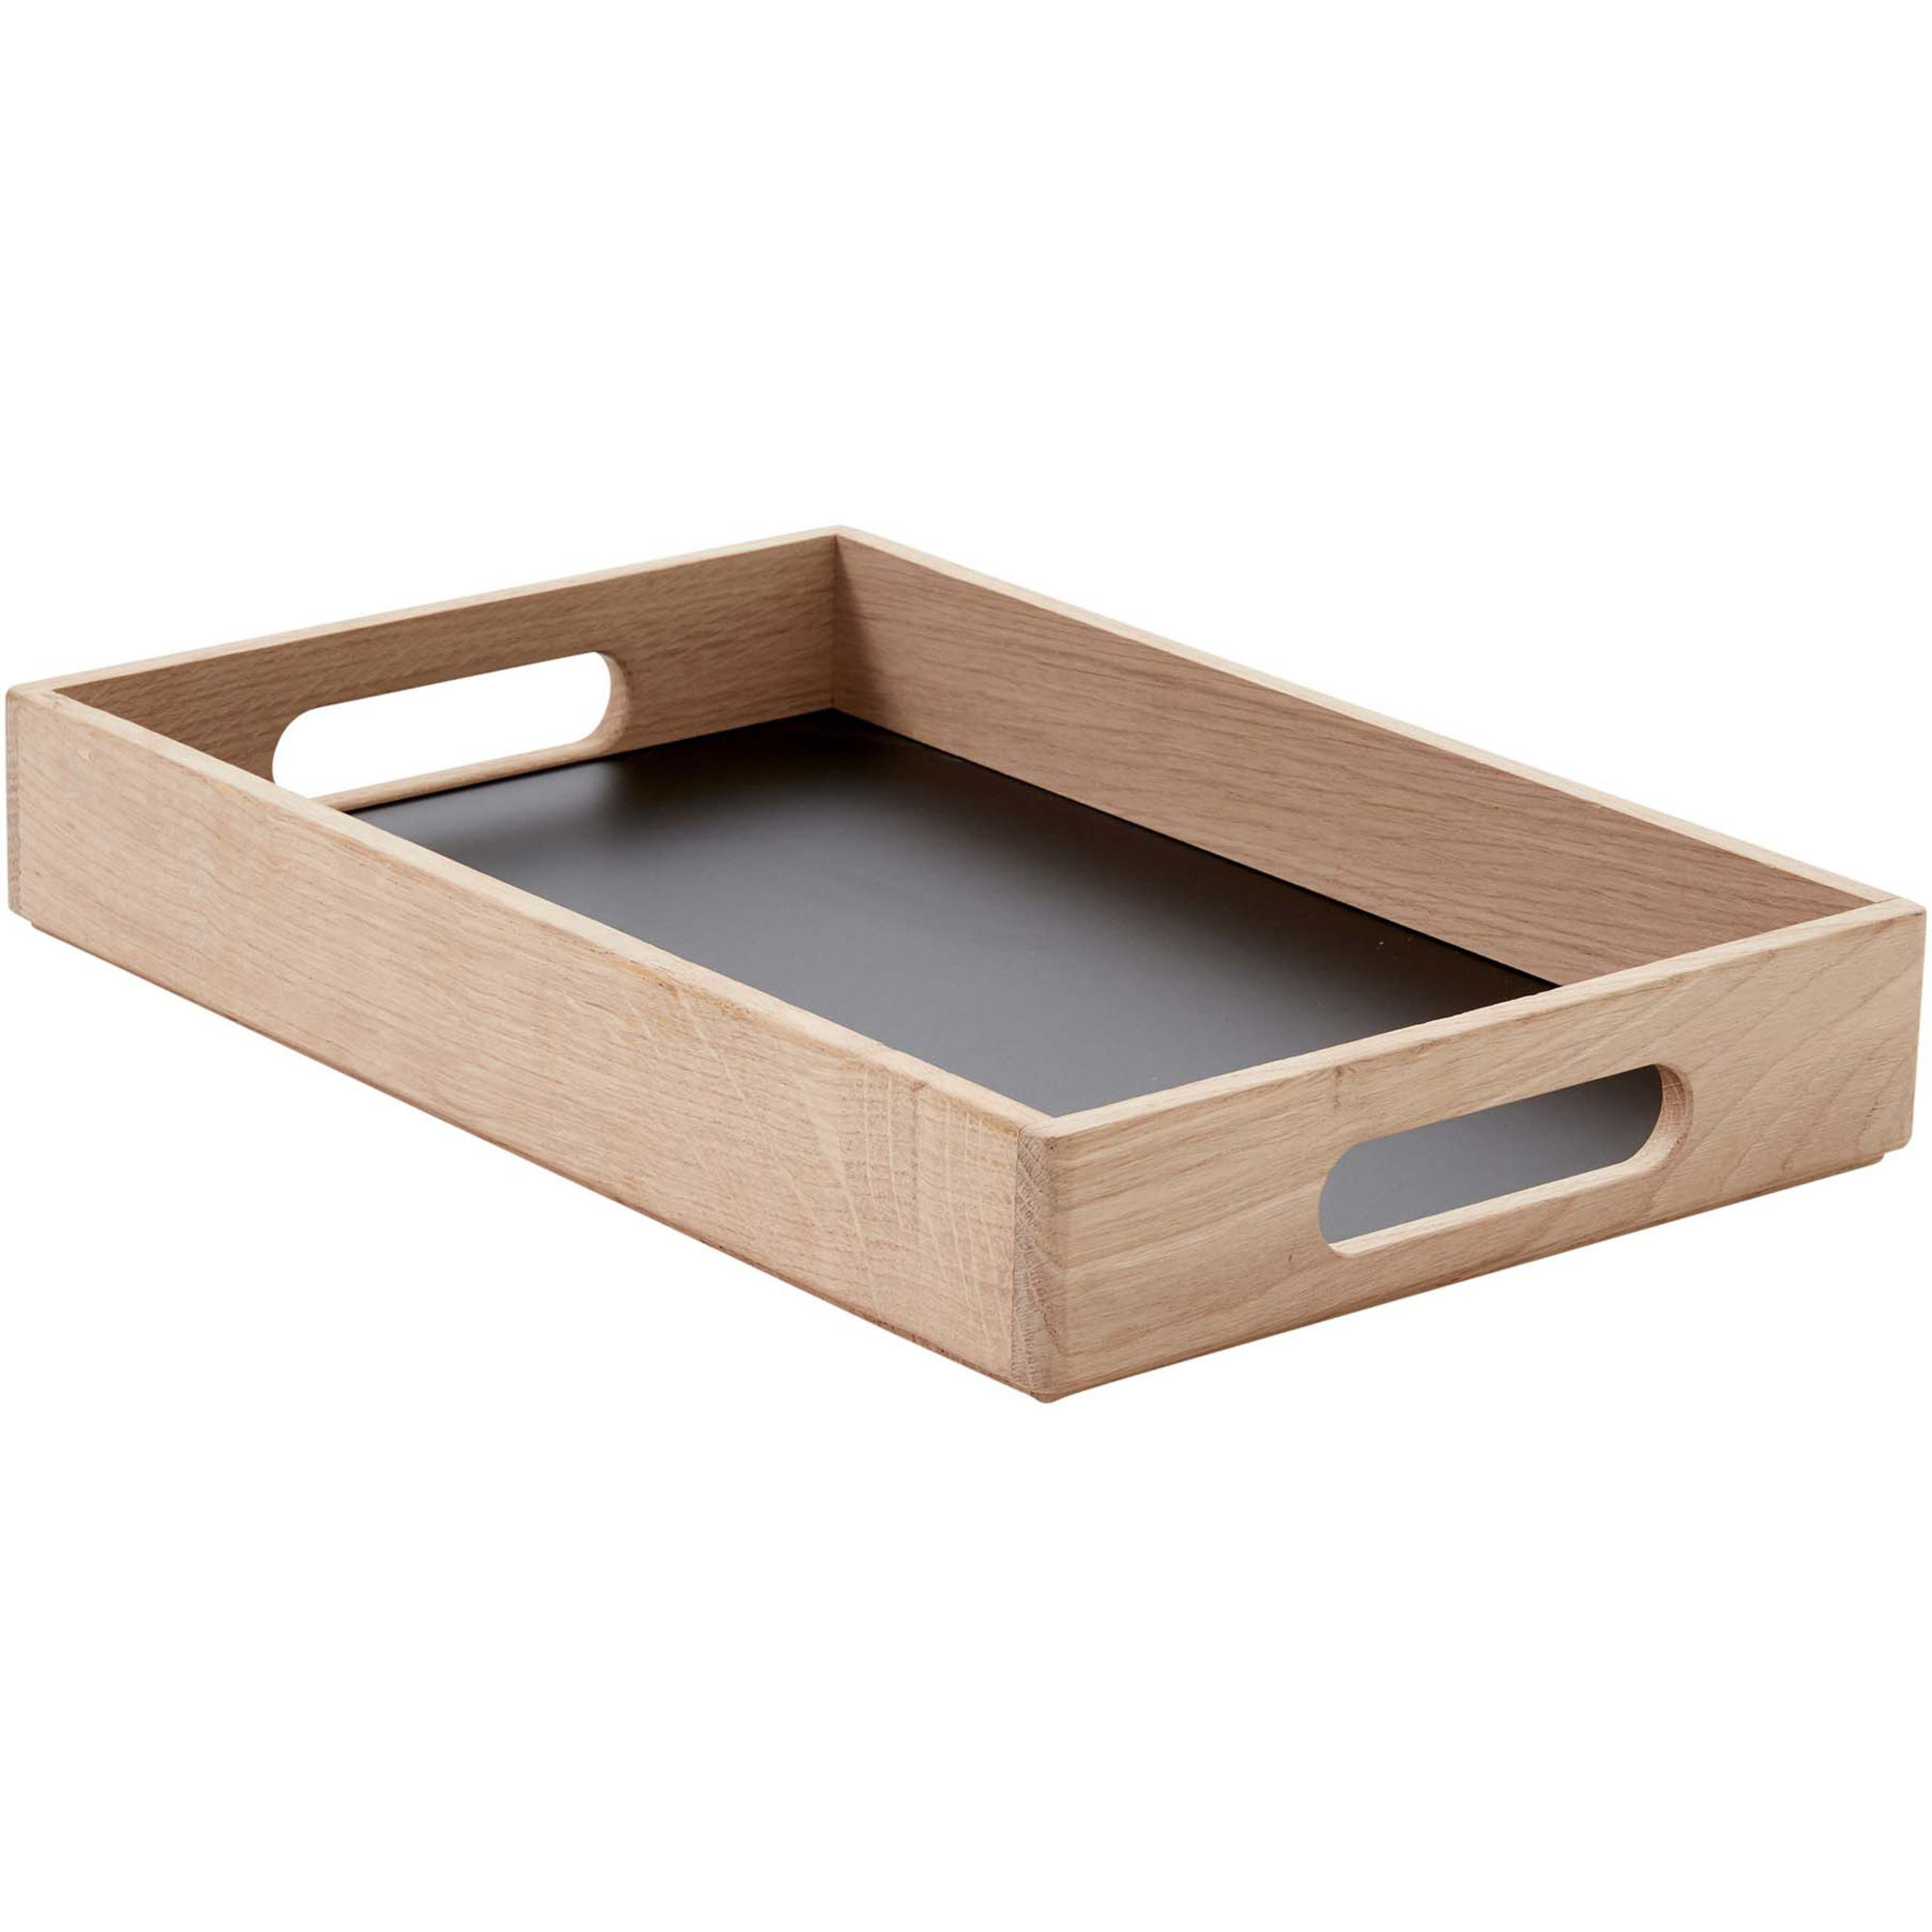 Andersen Furniture Bricka 36 x 24 cm Oak